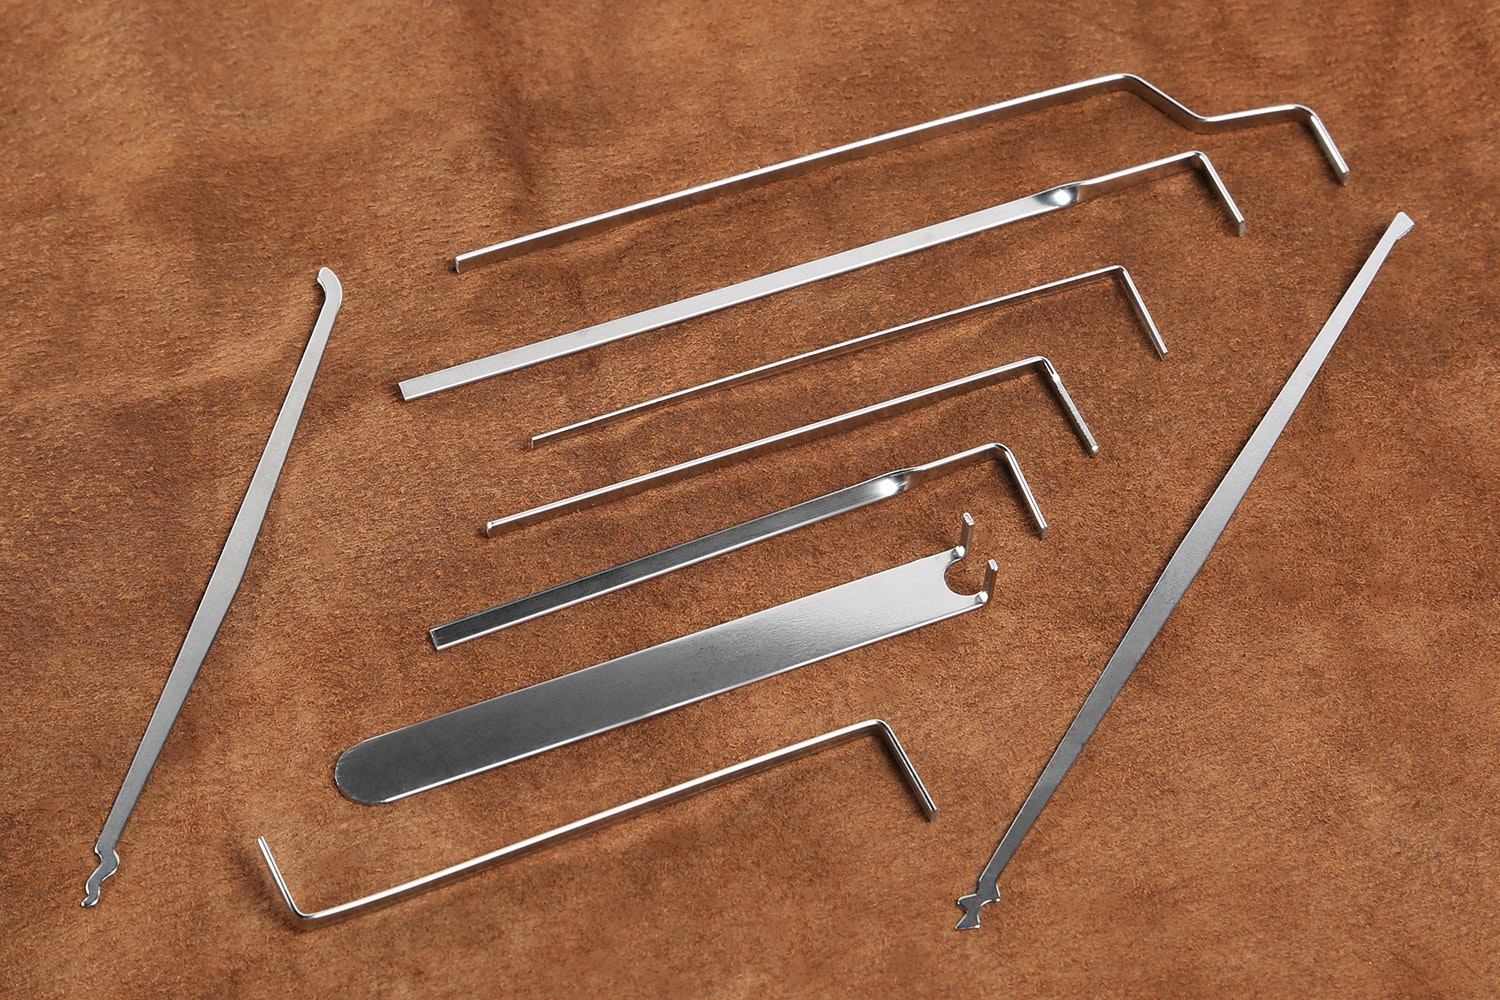 SouthOrd Full Line Lockpick Sets